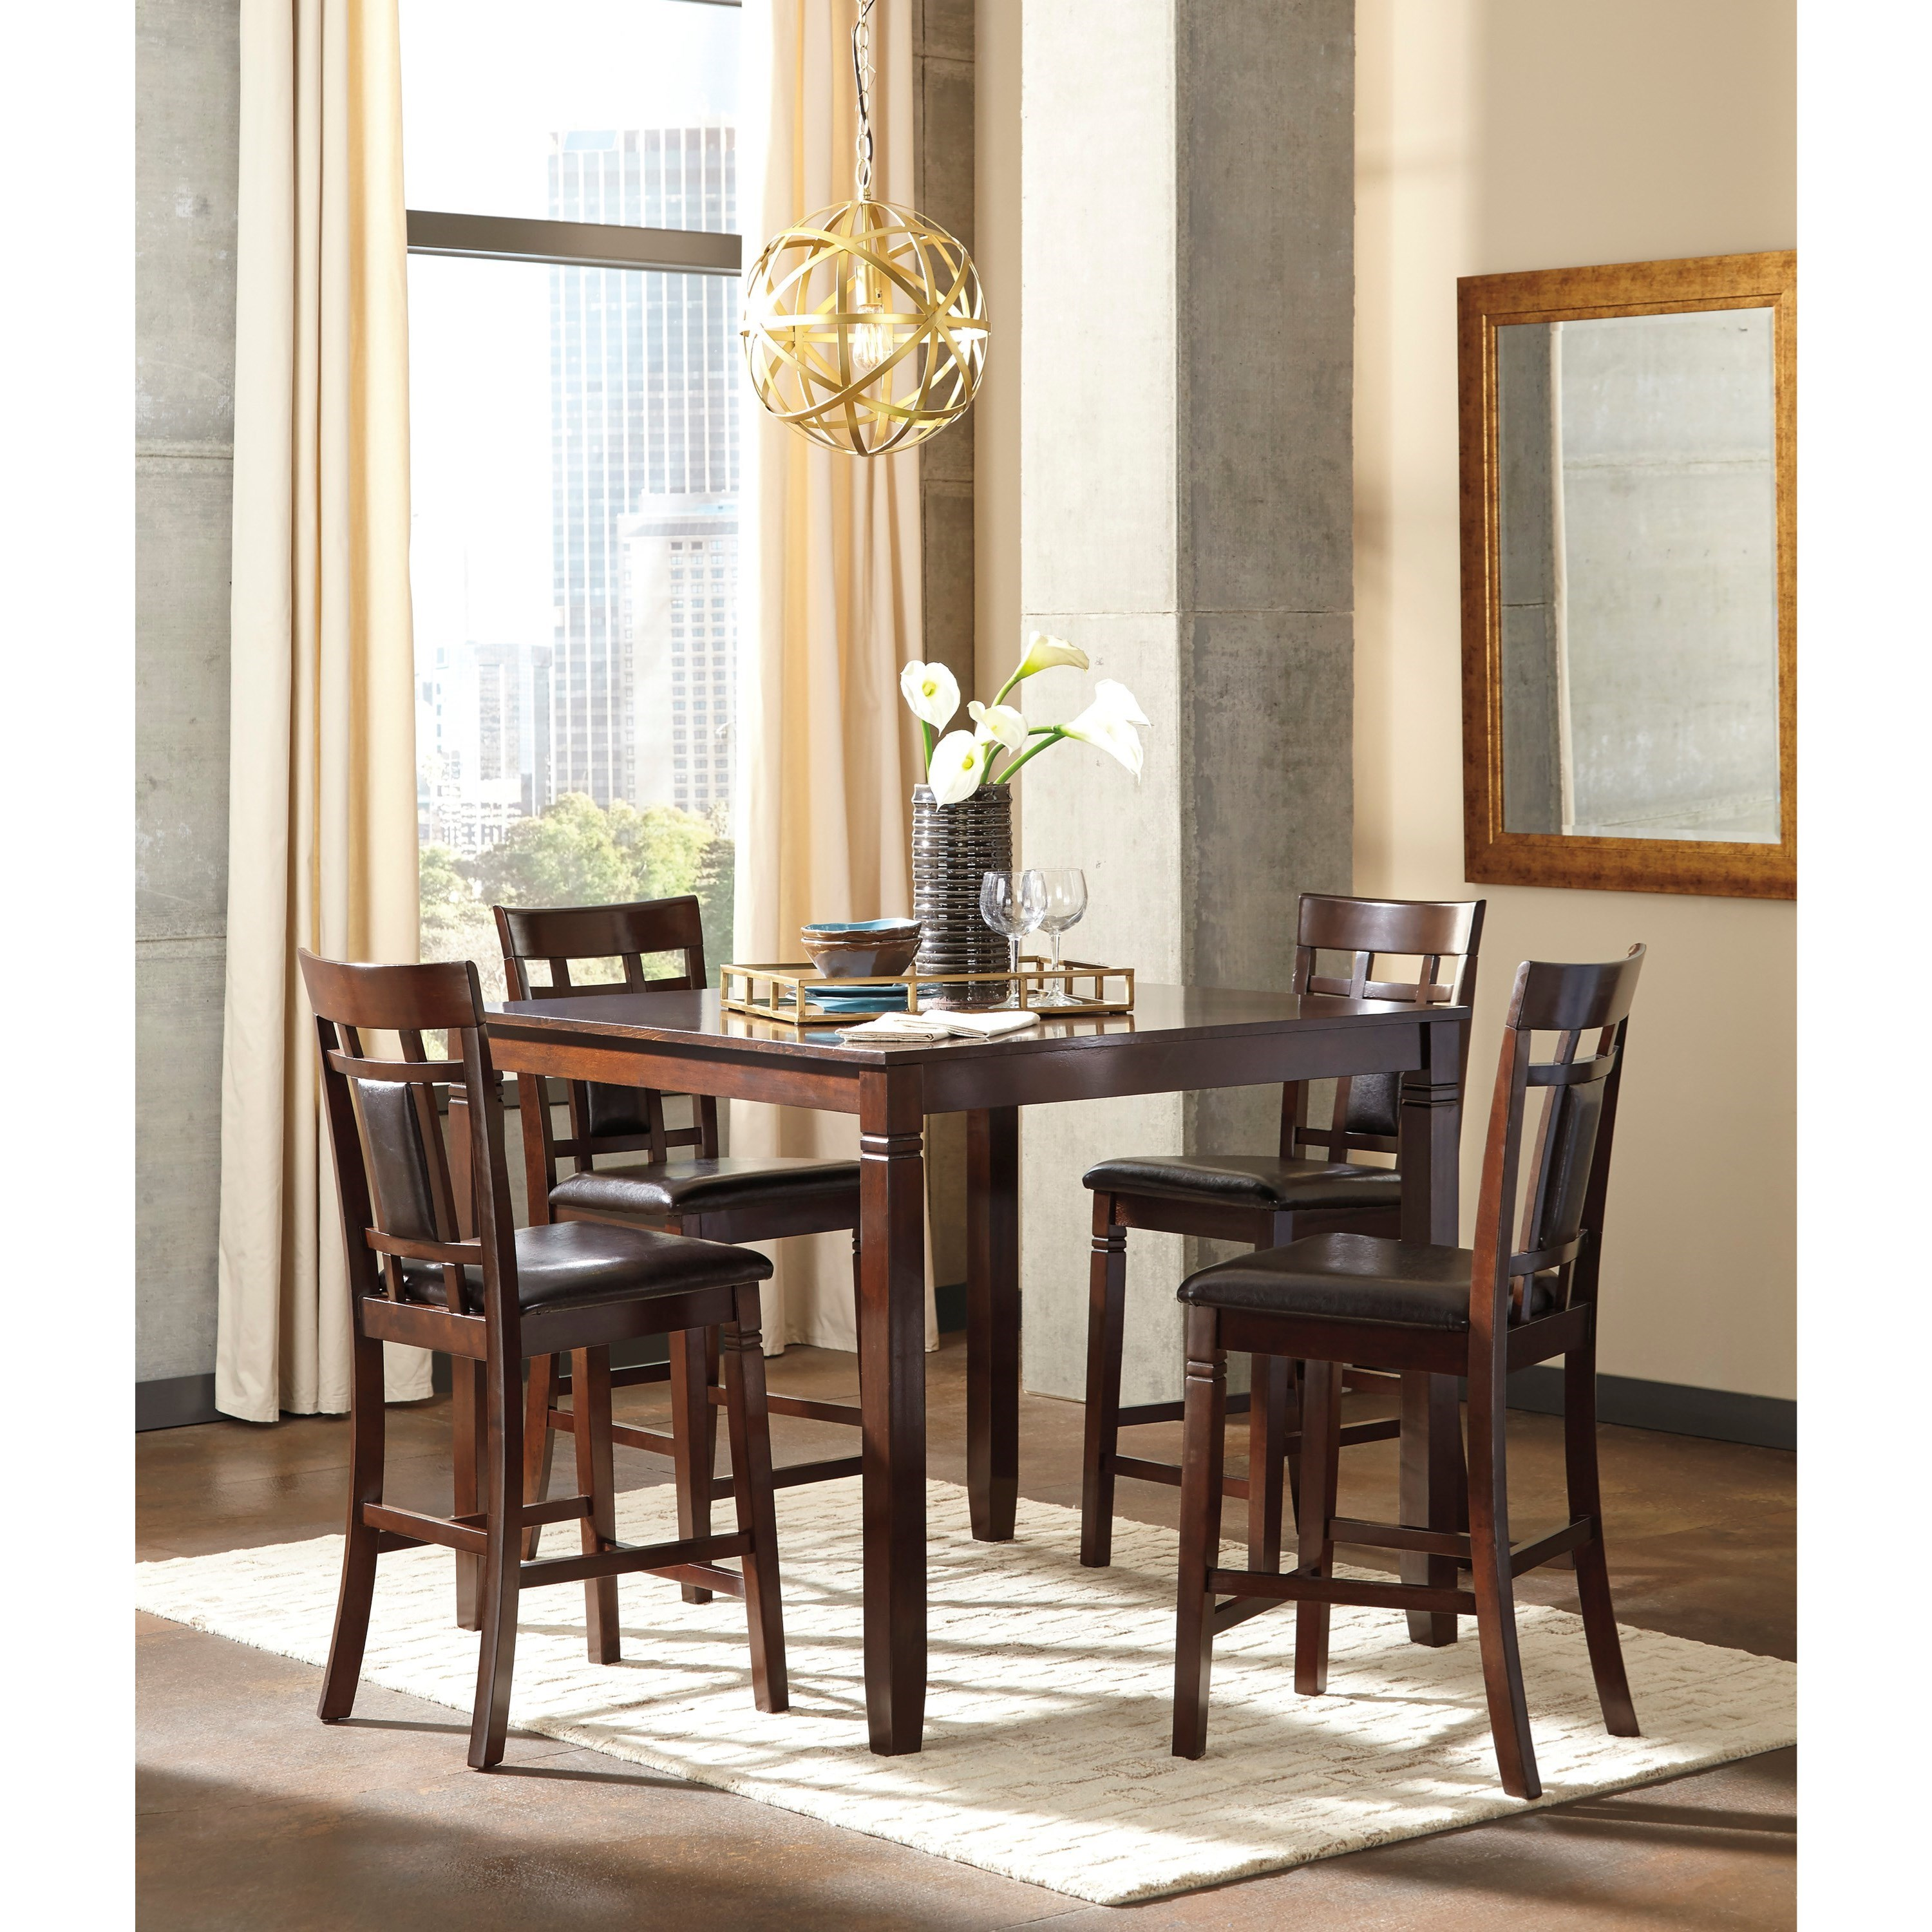 Signature design by ashley bennox contemporary 5 piece for 5 piece dining room set with bench